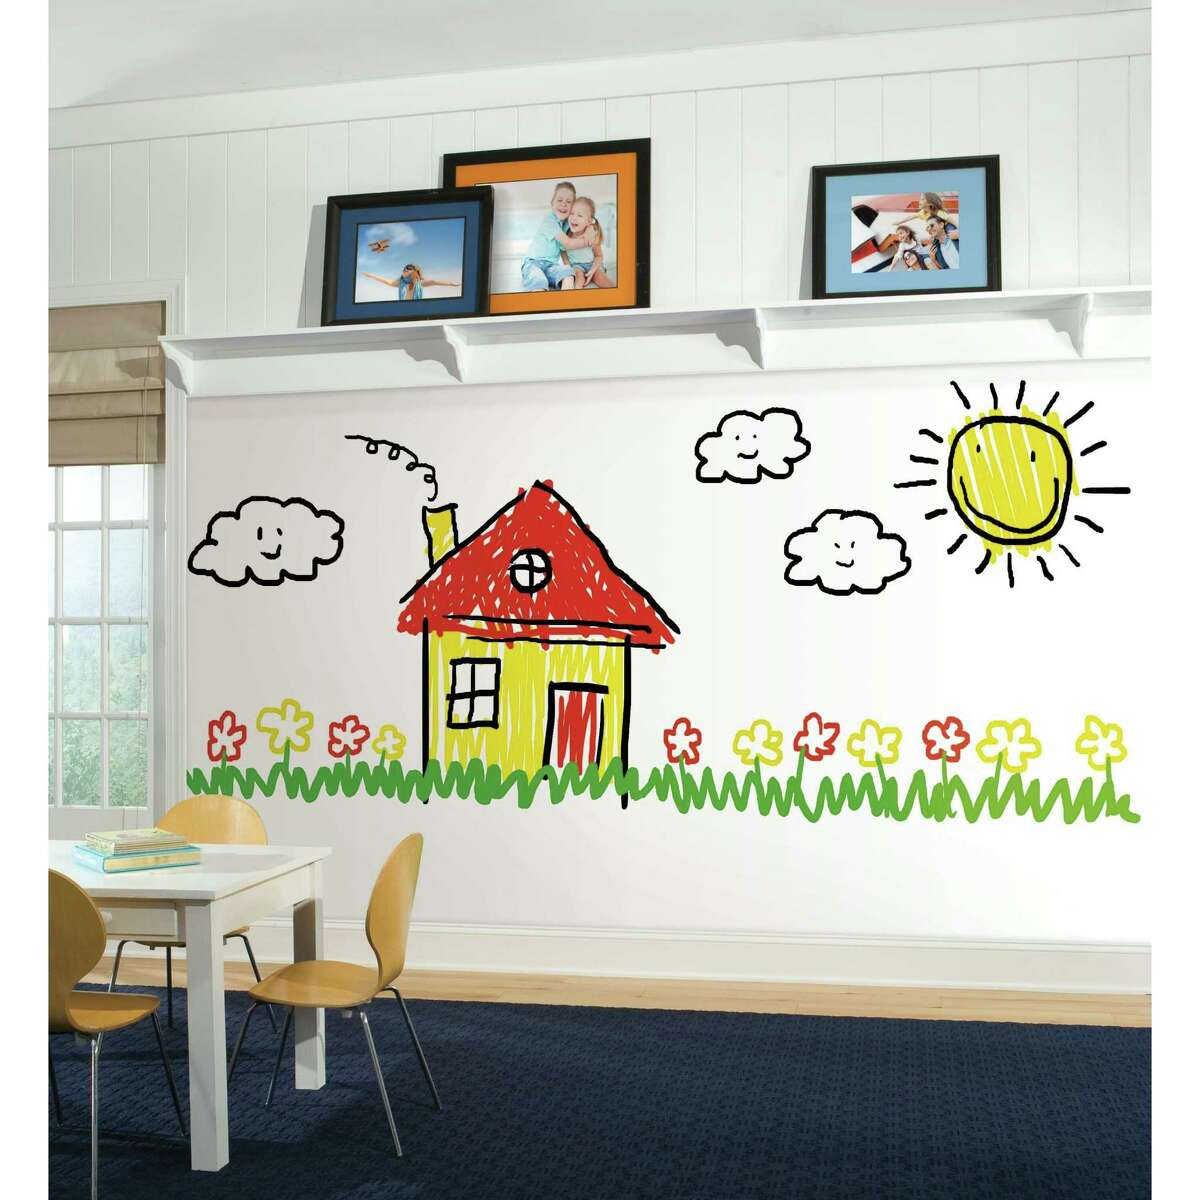 York Wallcoverings has created Dry-Erase Peel and Stick wallpaper. $34.99 per roll (28 square feet)